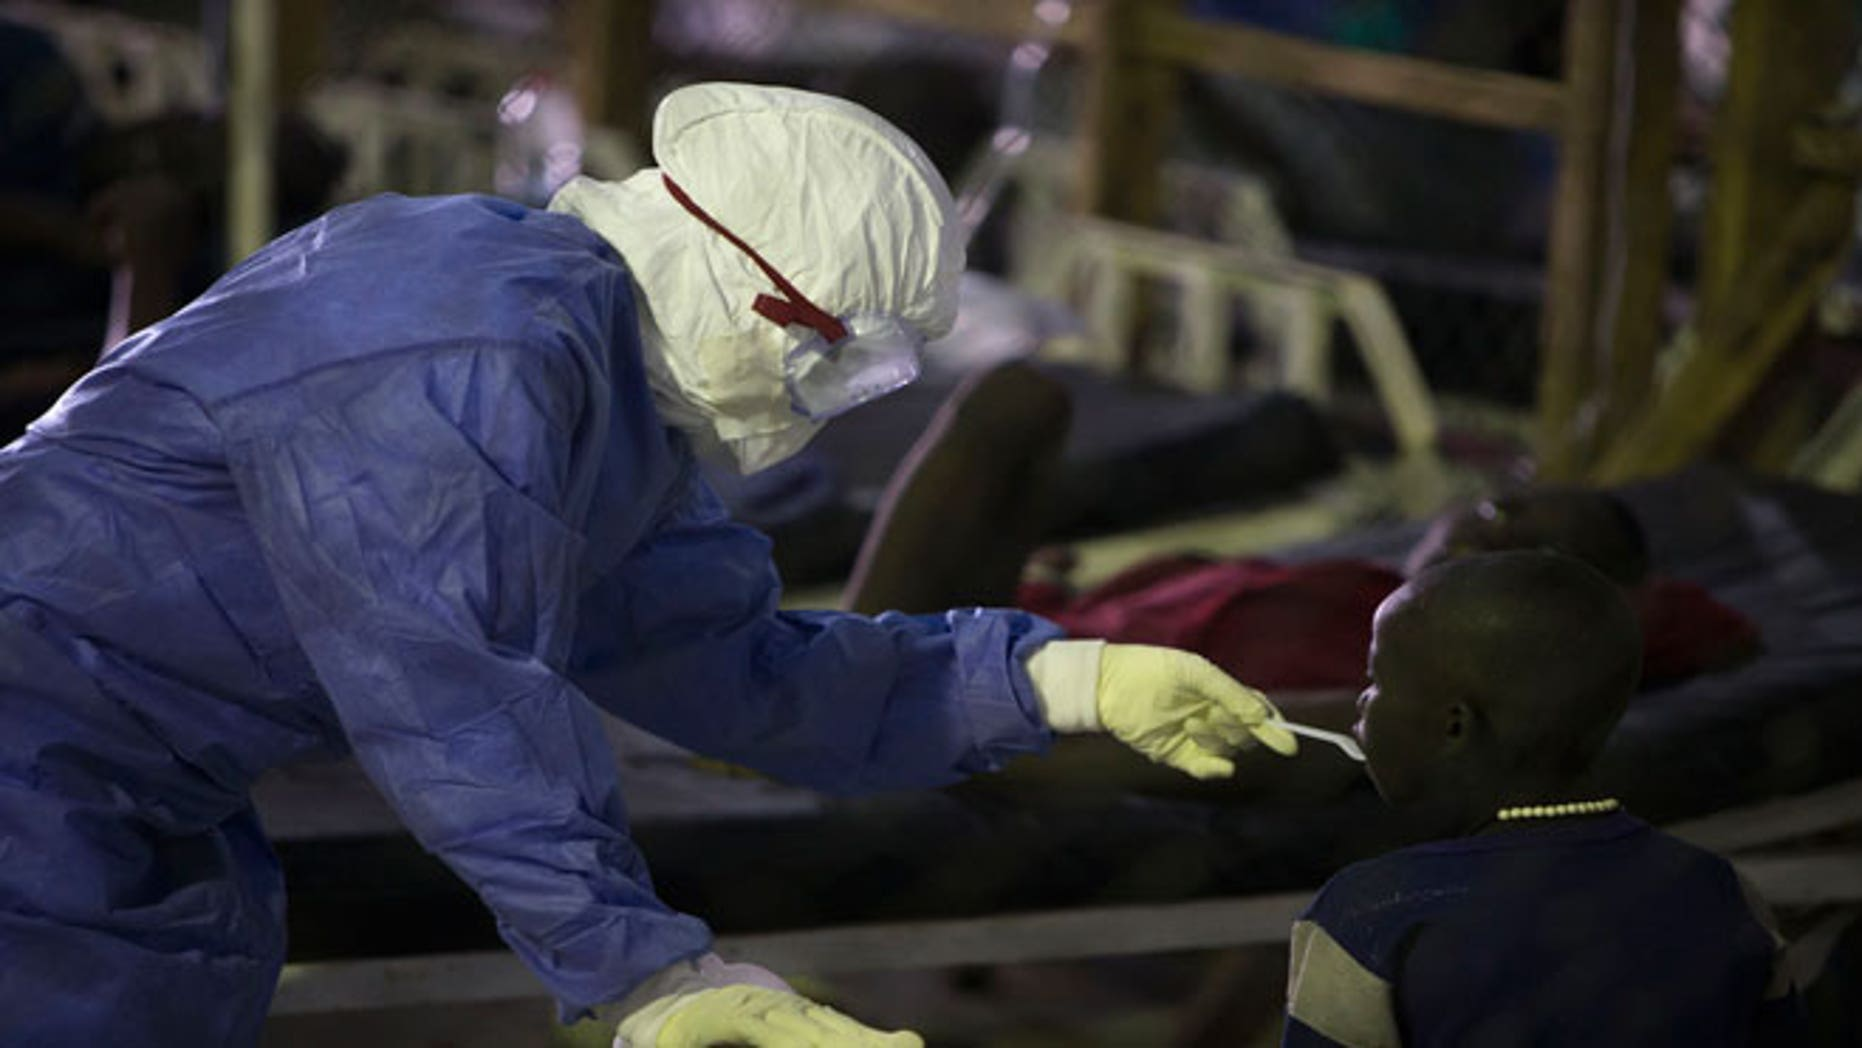 A health worker wearing protective equipment feeds a patient being treated for Ebola at the Island Clinic in Monrovia, September 30, 2014.